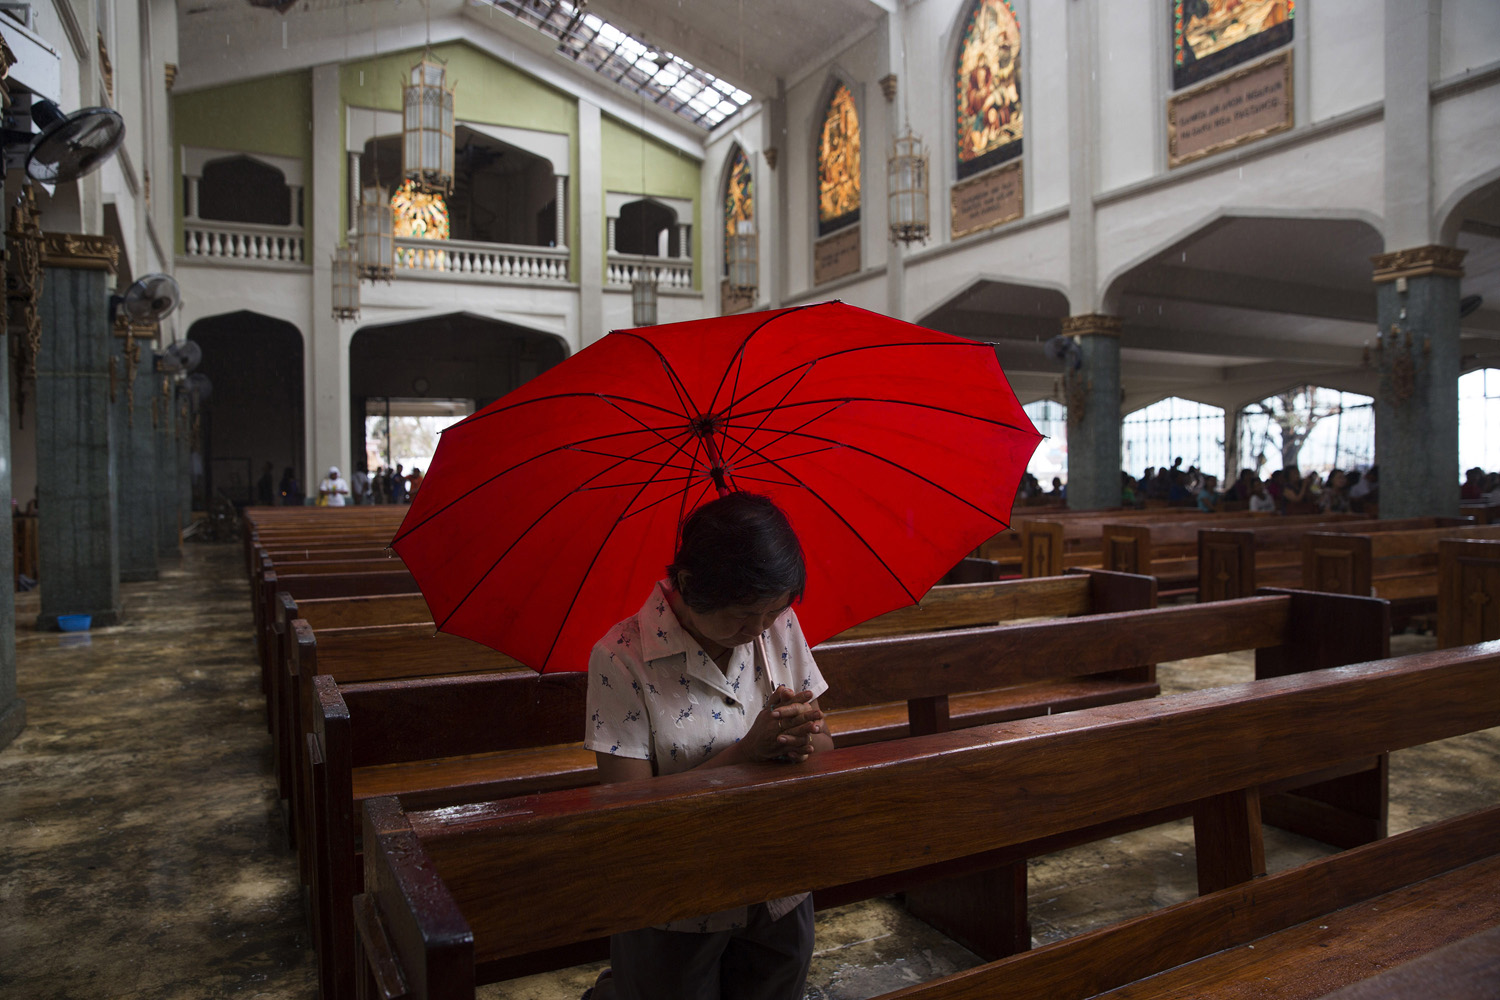 A woman prays with an umbrella to protect her from the rain falling through the damaged roof of the Santo Nino church in Tacloban, Nov. 17, 2013.